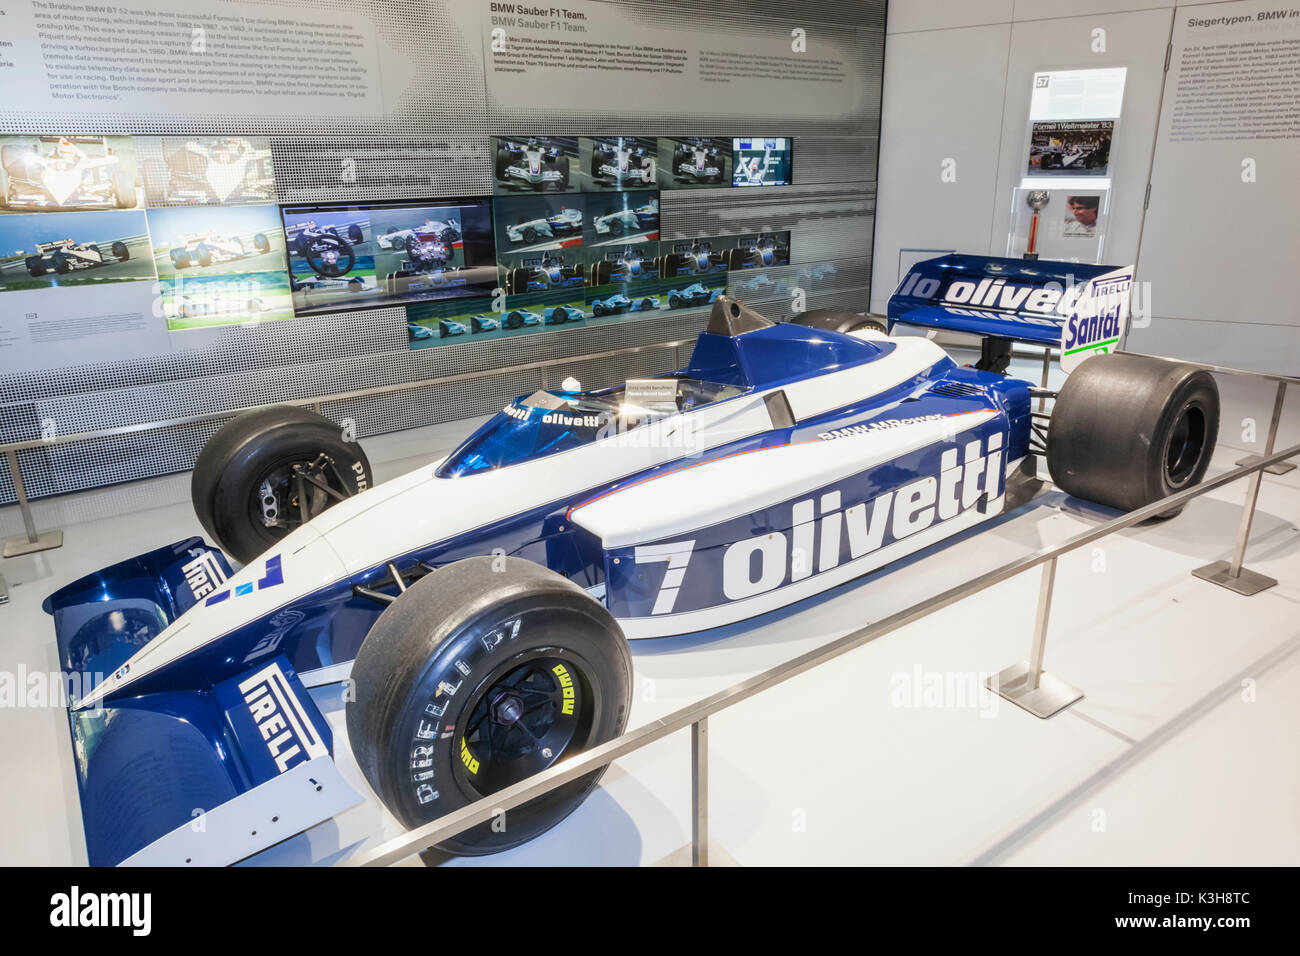 Germany, Bavaria, Munich, BMW Museum, Display of the Brabham BMW BT 52 Formula 1 Racing Car - Stock Image